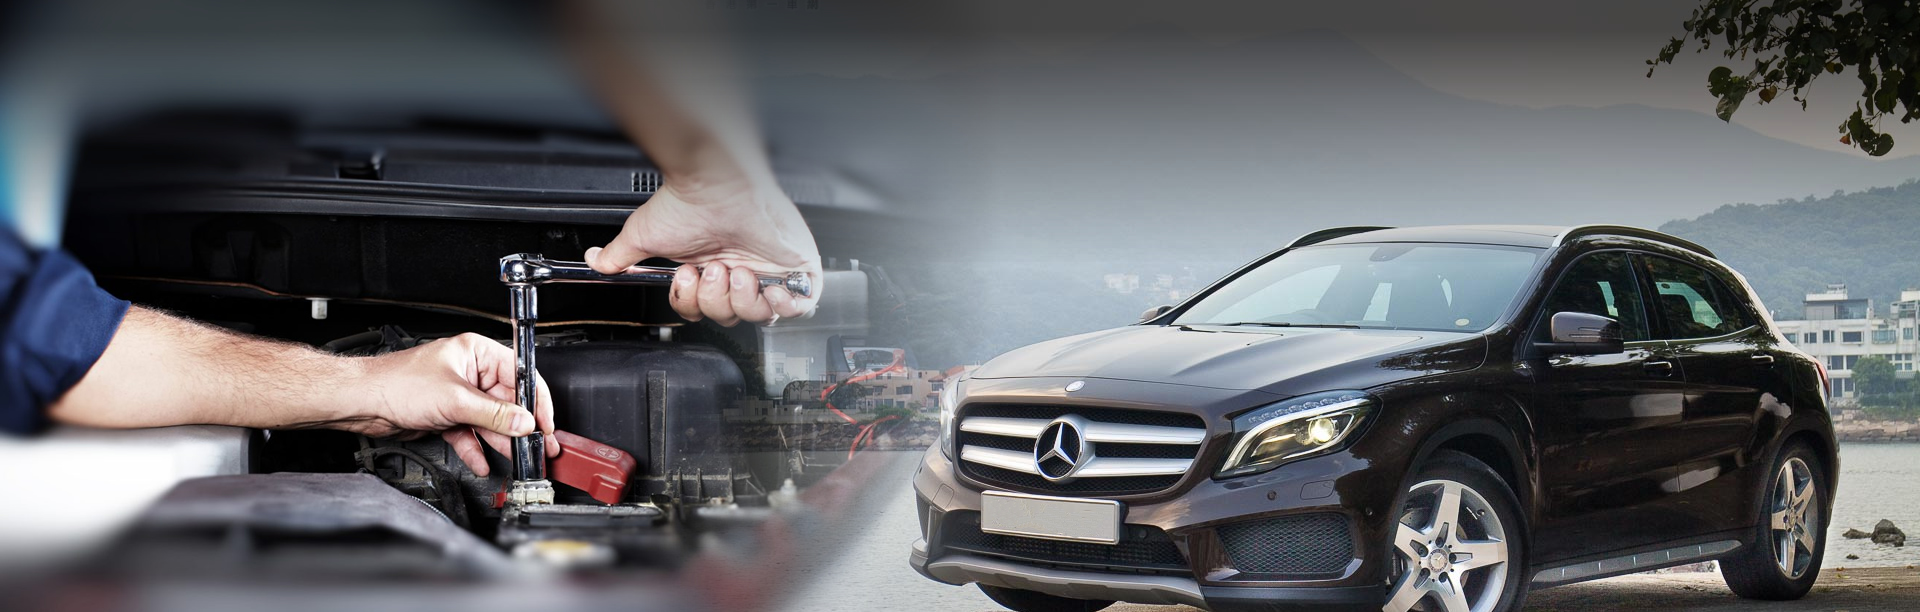 Mercedes service melbourne mercedes mechanic dandenong for Mercedes benz sydney service